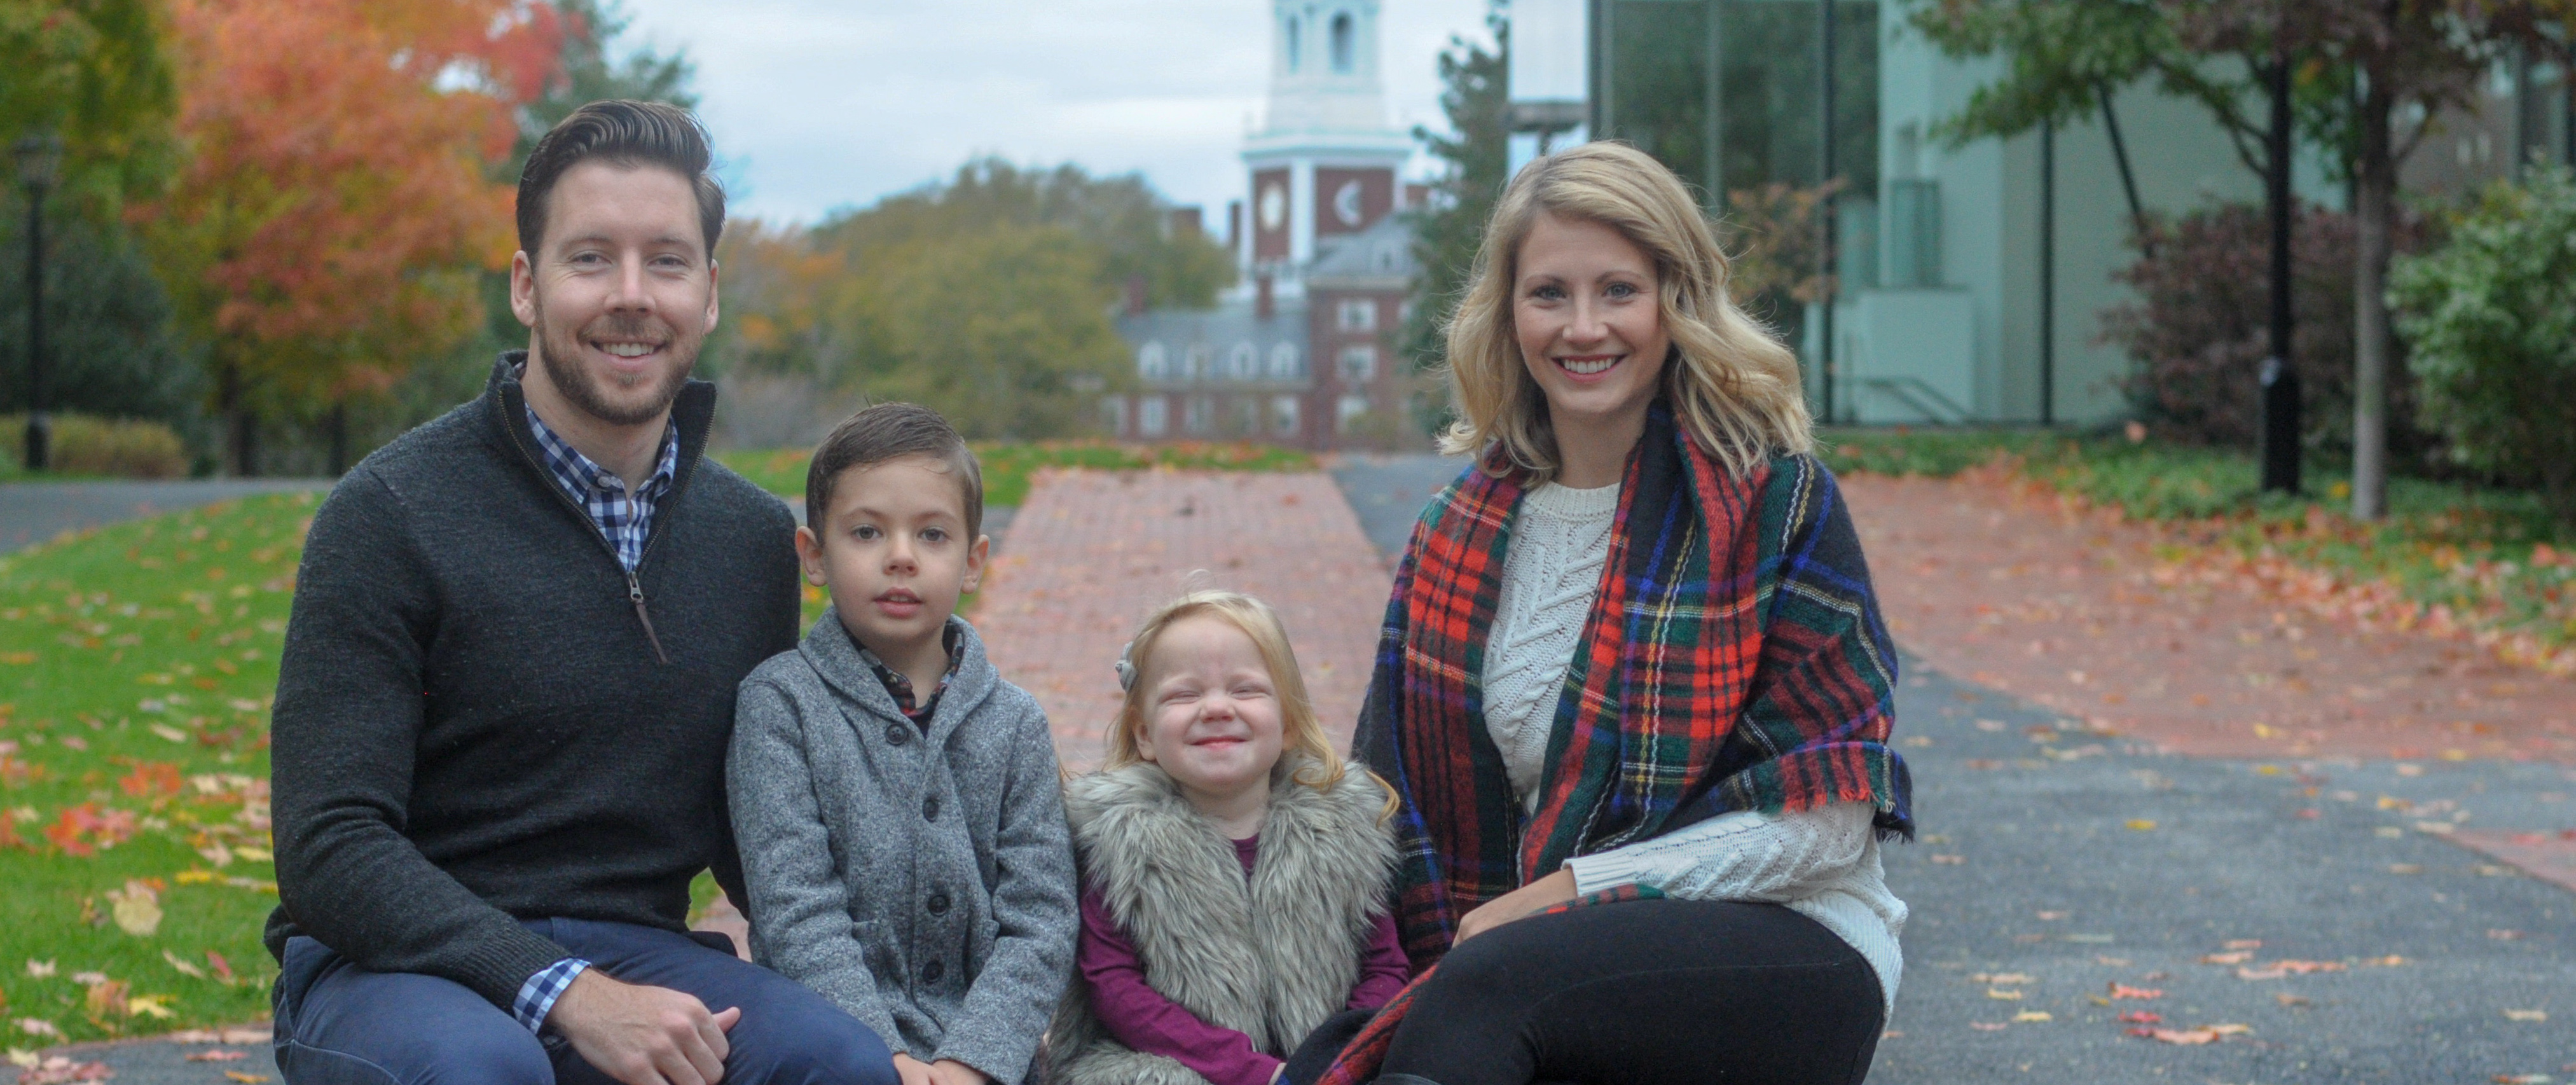 Being a Mom and Founder at HBS